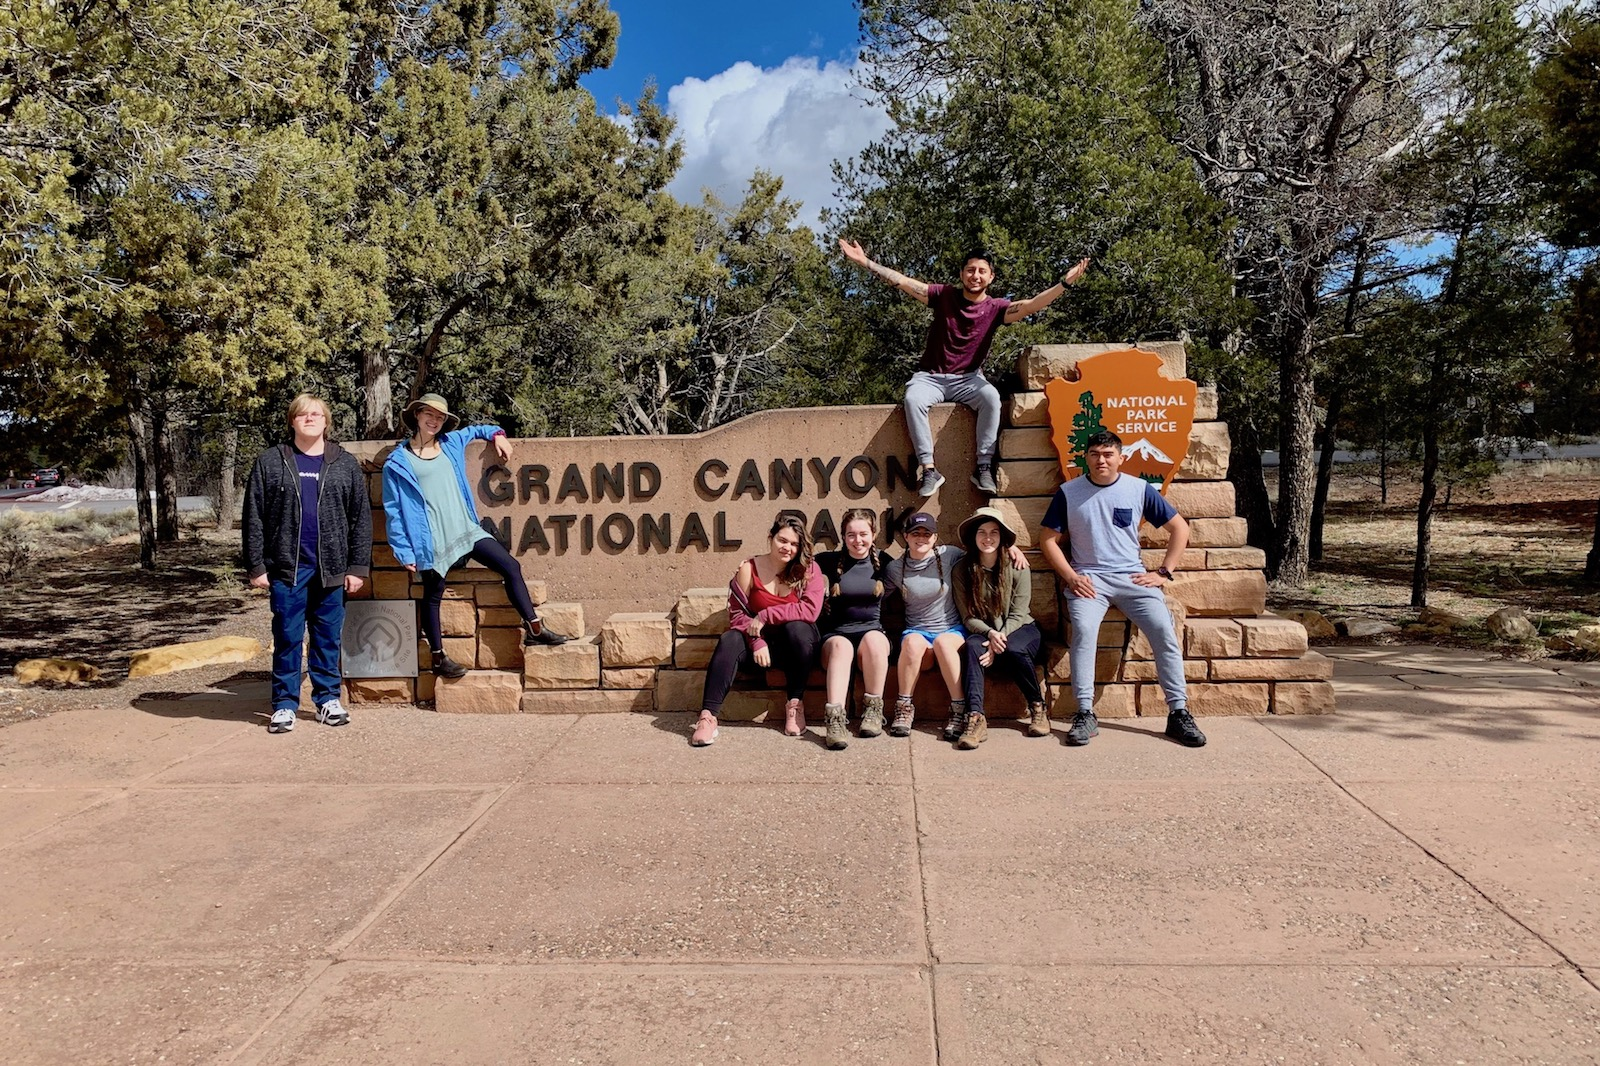 Austin Peay students tour the West during Spring Break with Govs Outdoors